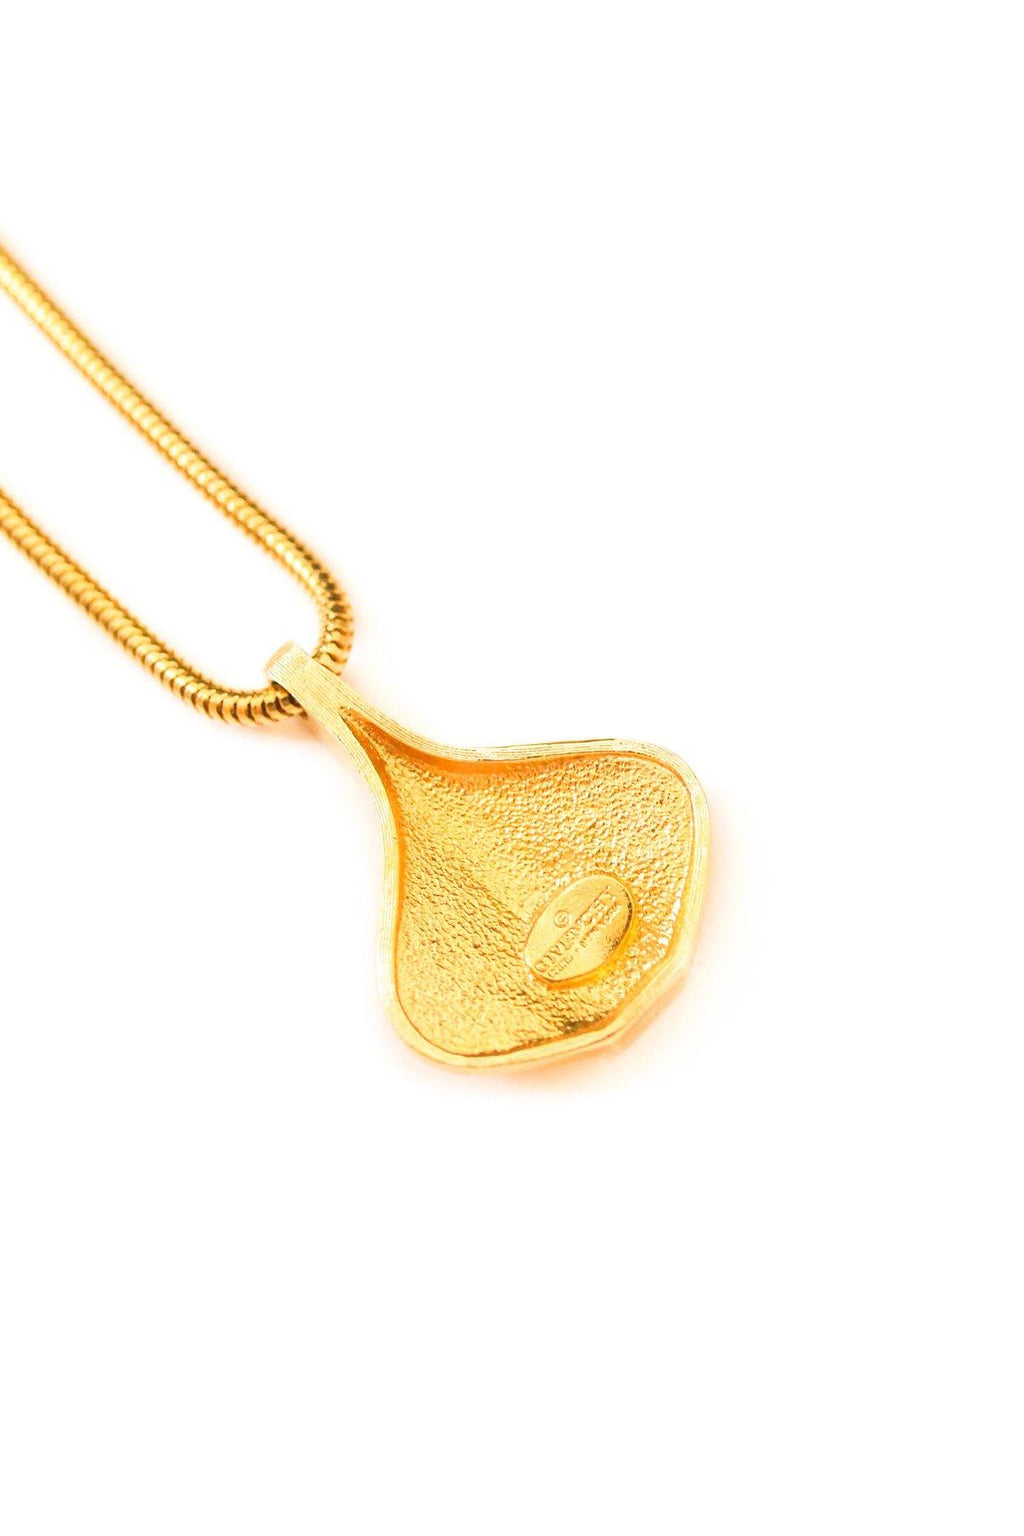 Givenchy Teardrop Pendant Necklace